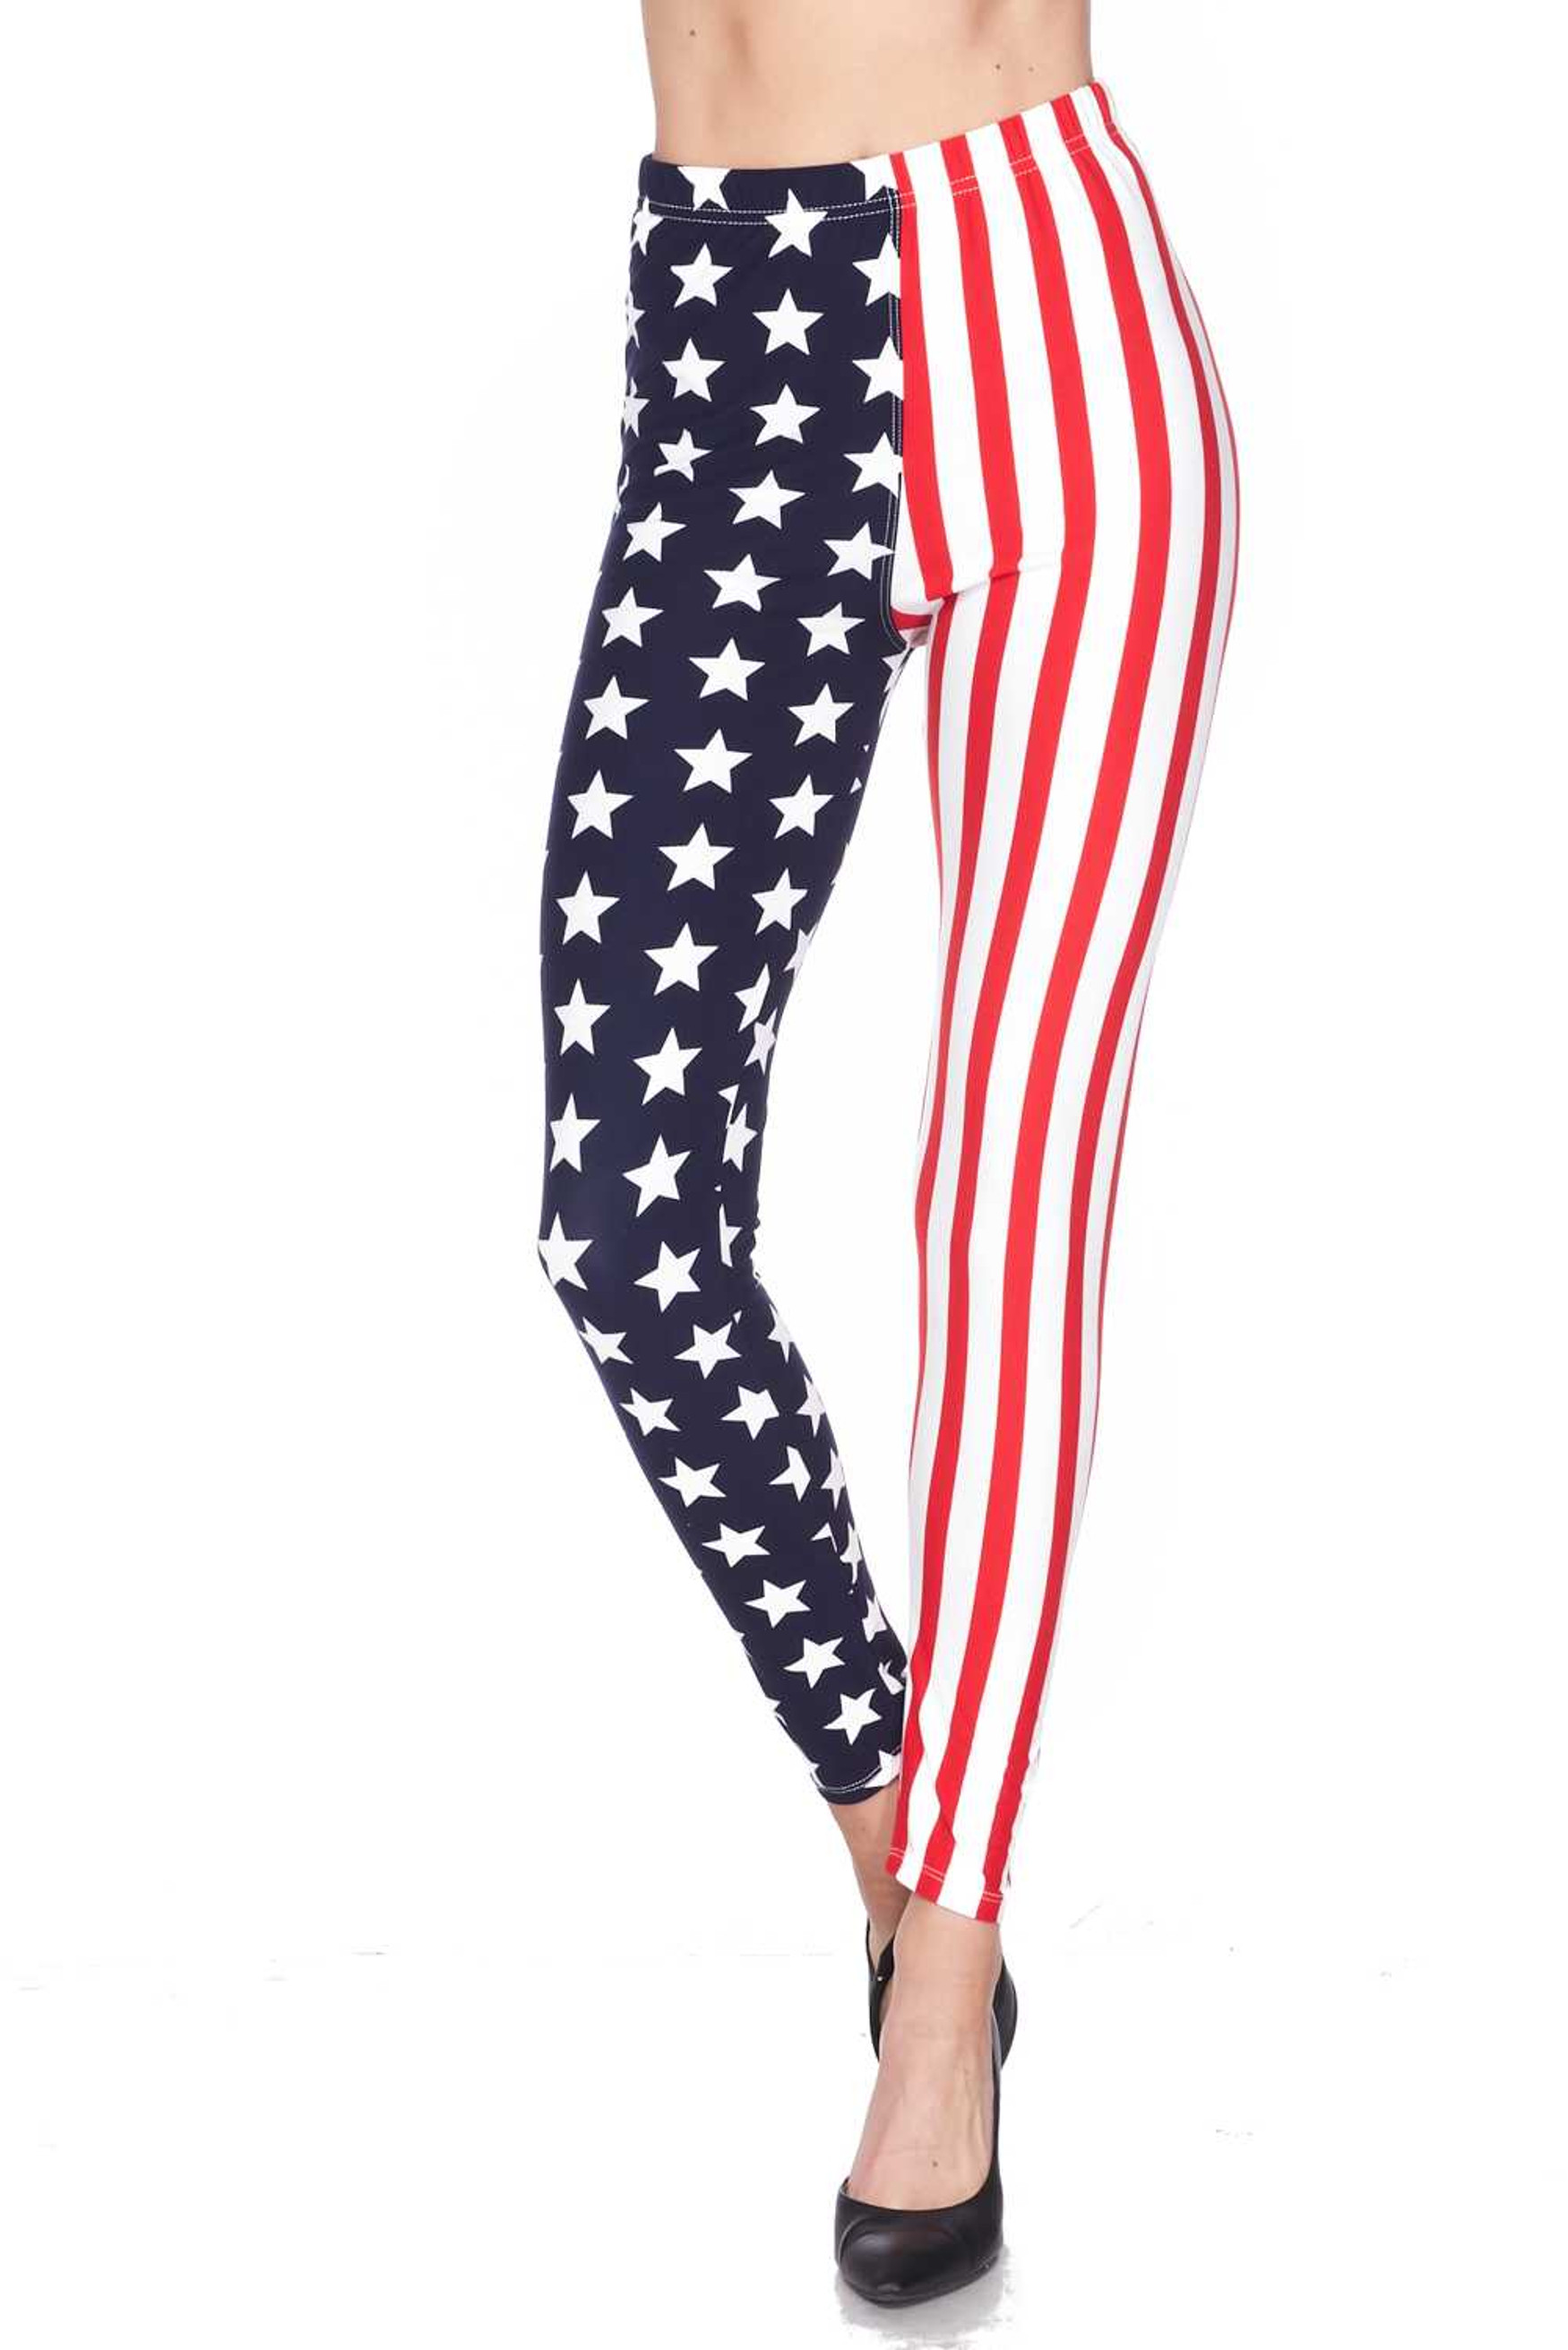 Buttery Soft USA Flag Extra Plus Size Leggings - 3X-5X